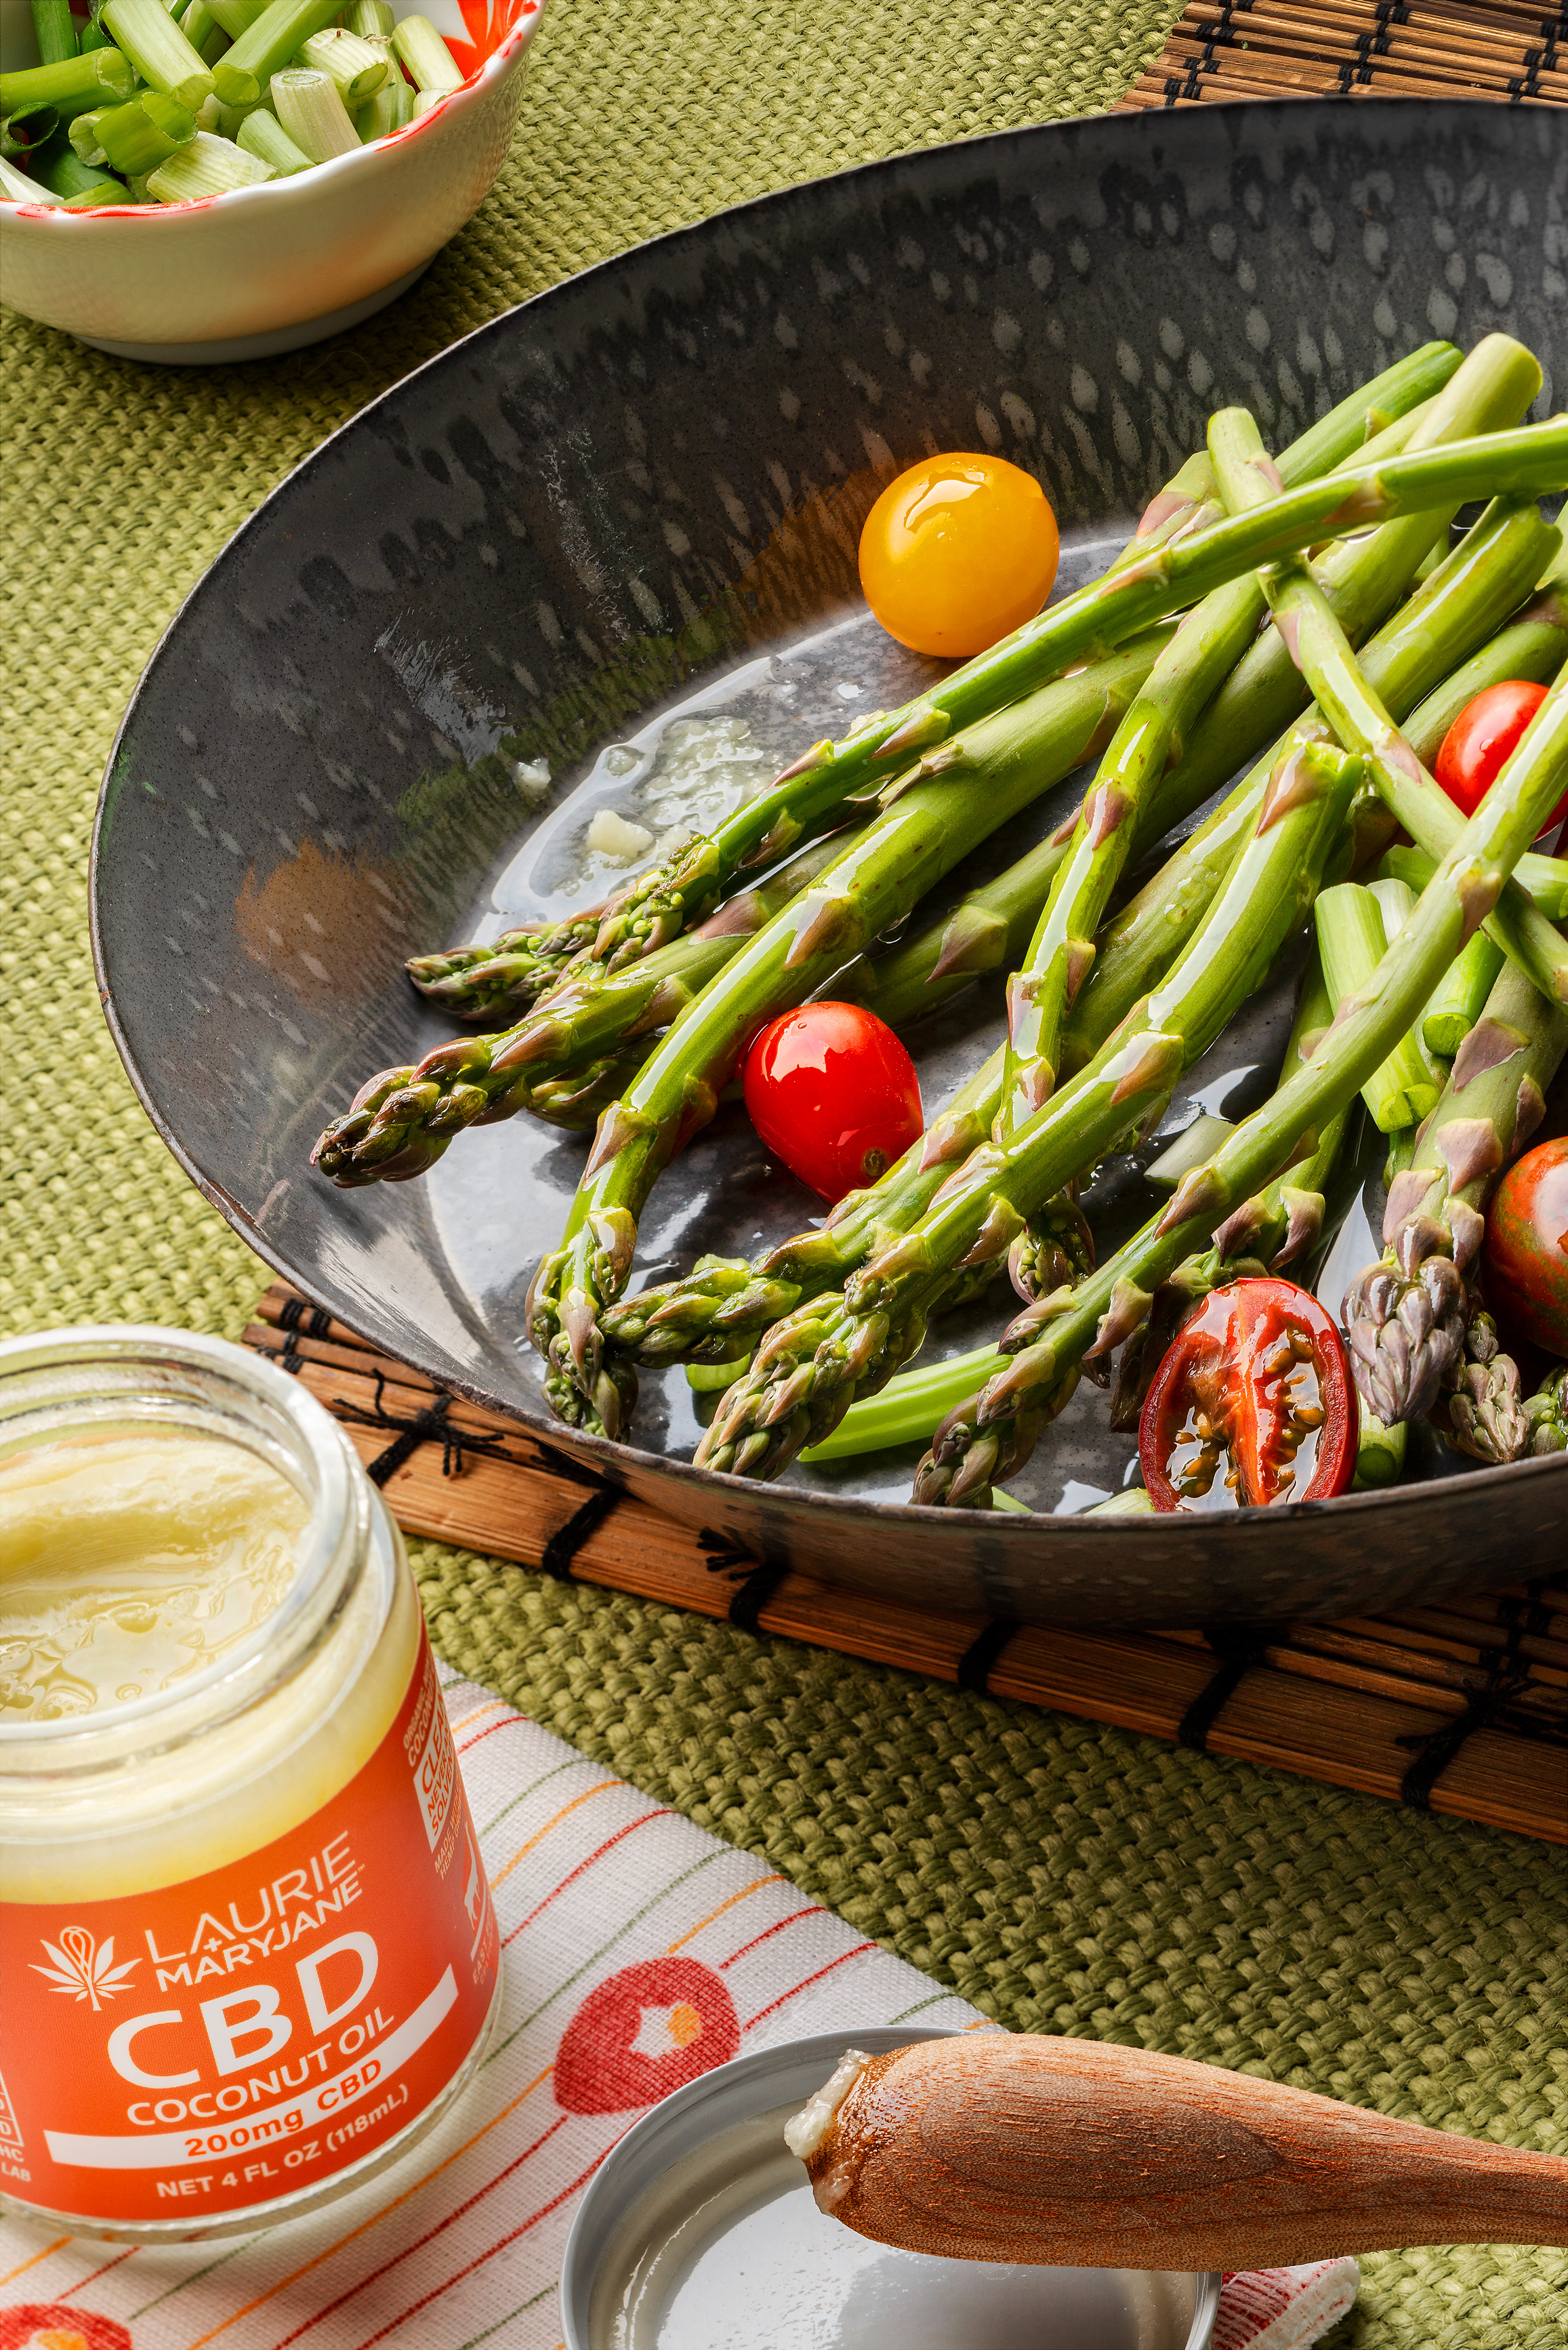 Coconut-Oil-Asparagus-2-smaller.jpg